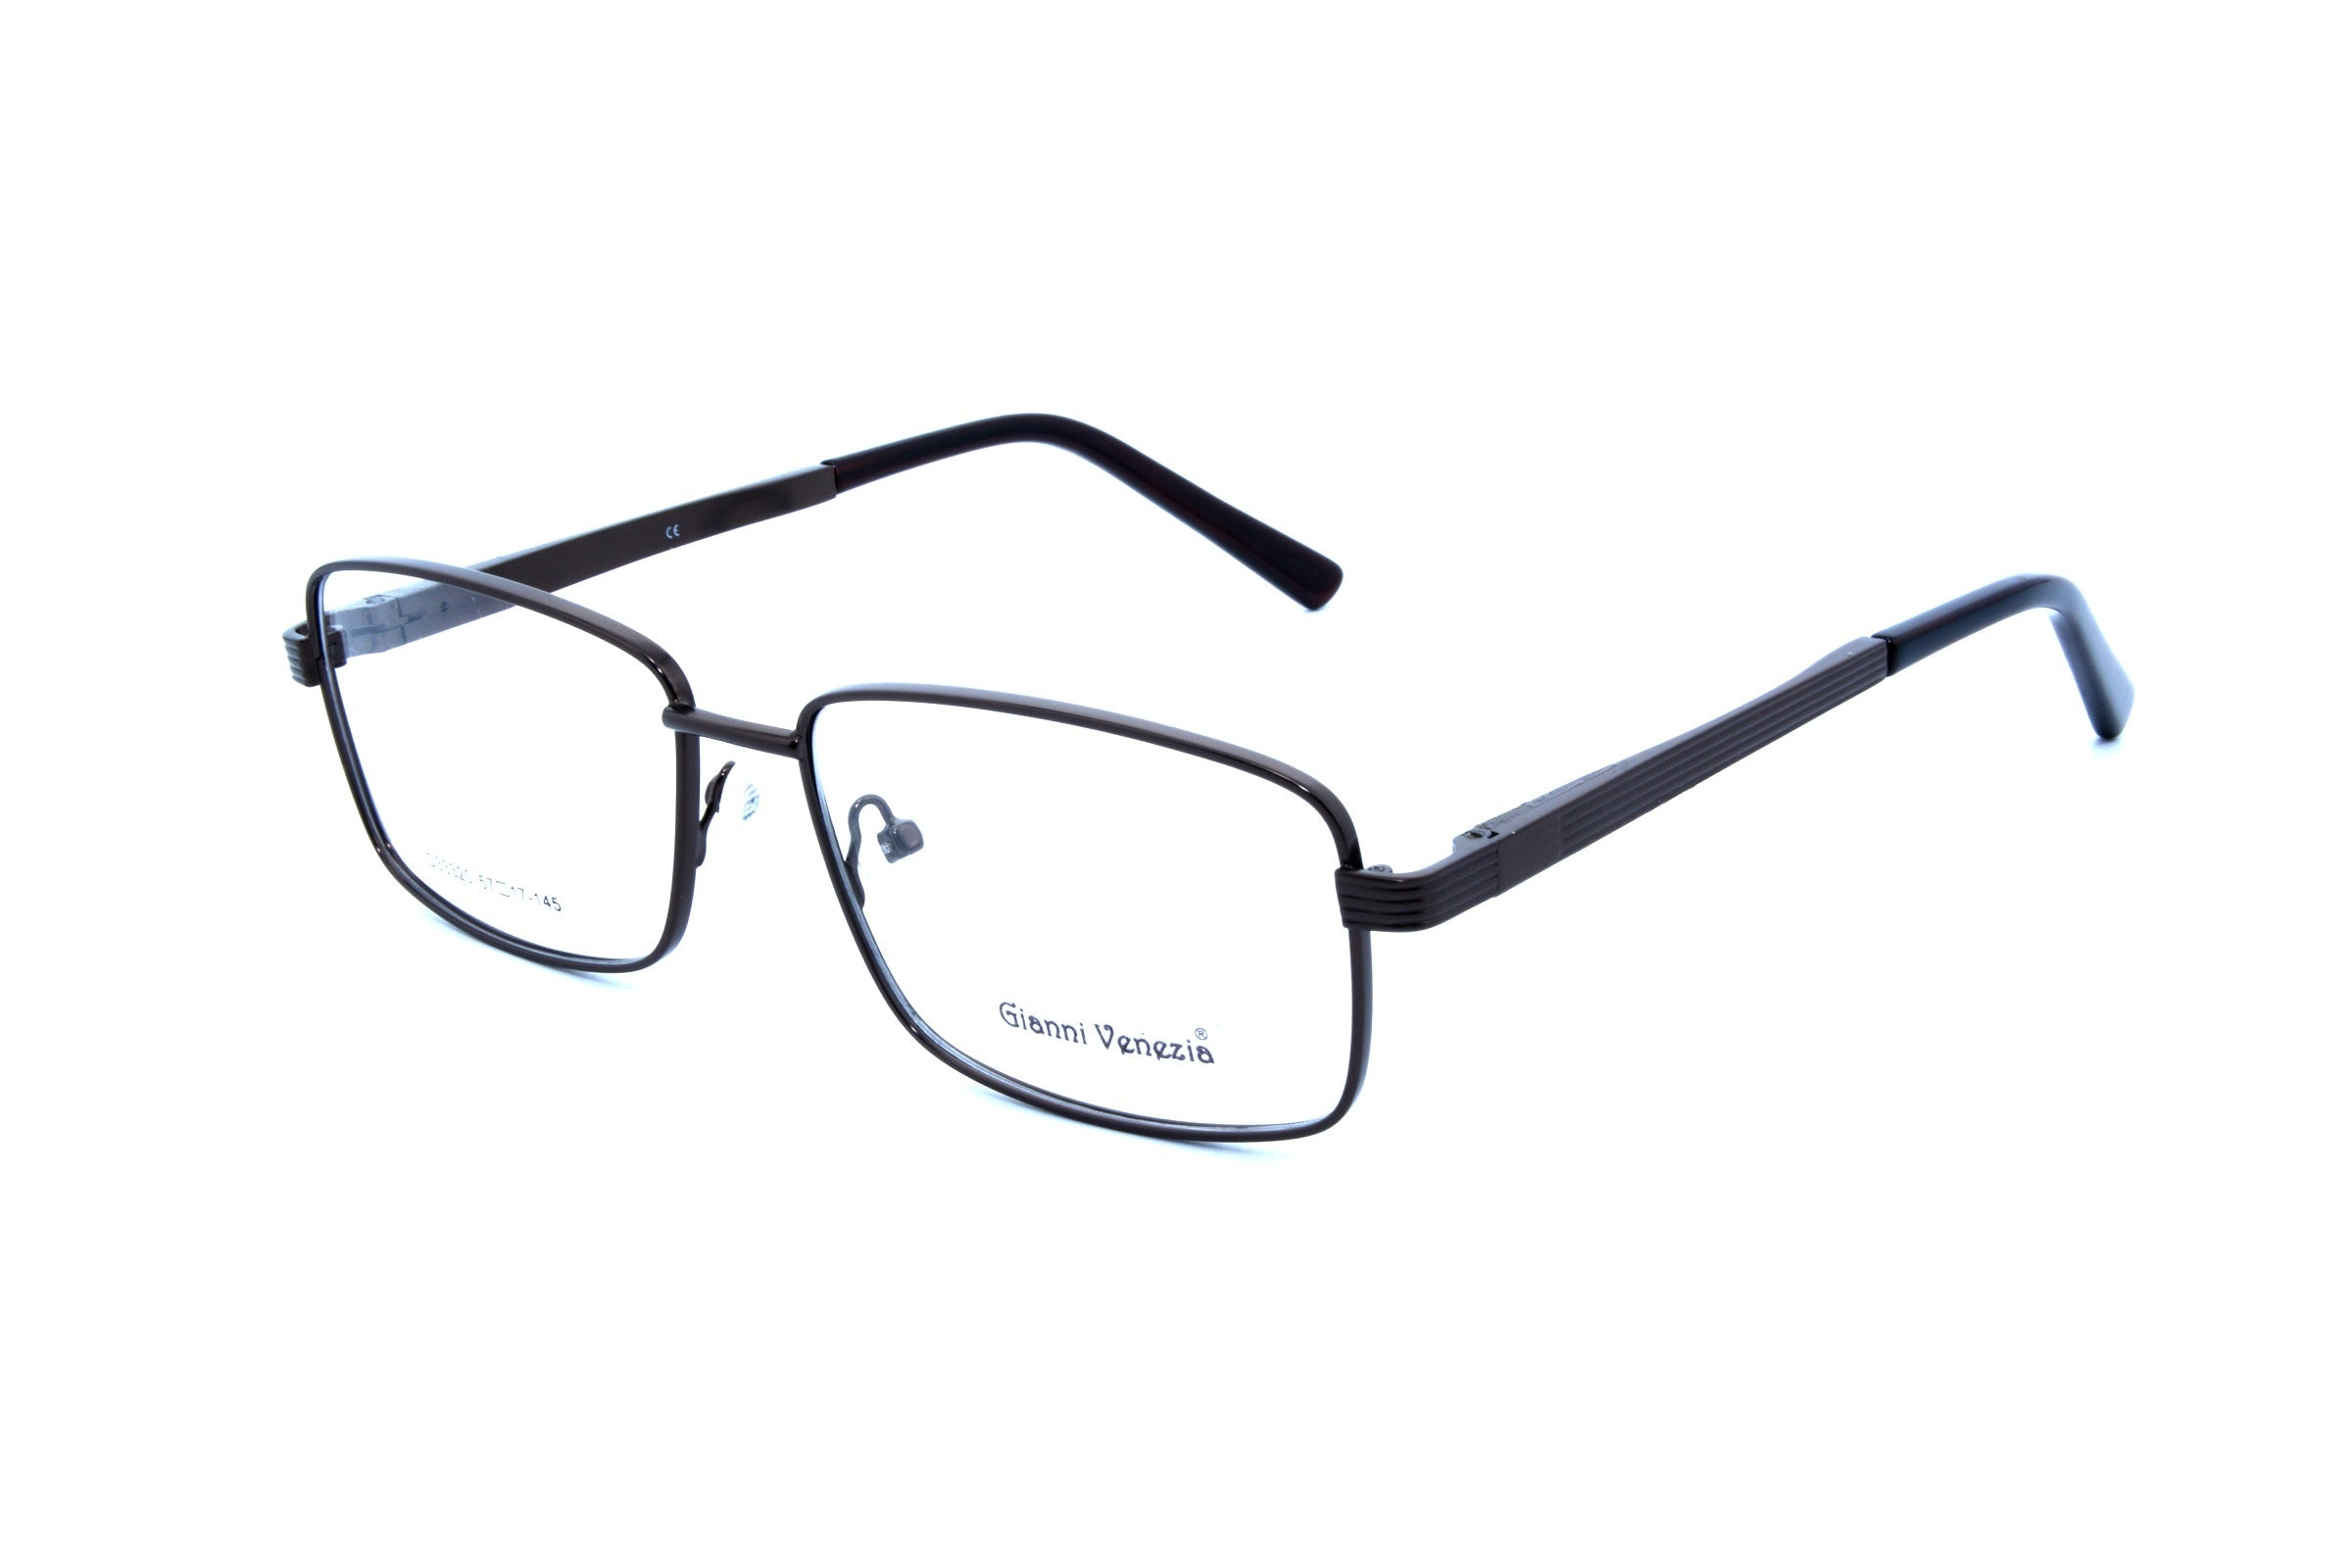 Gianni Venezia eyewear D33320, C4 - Optics Trading